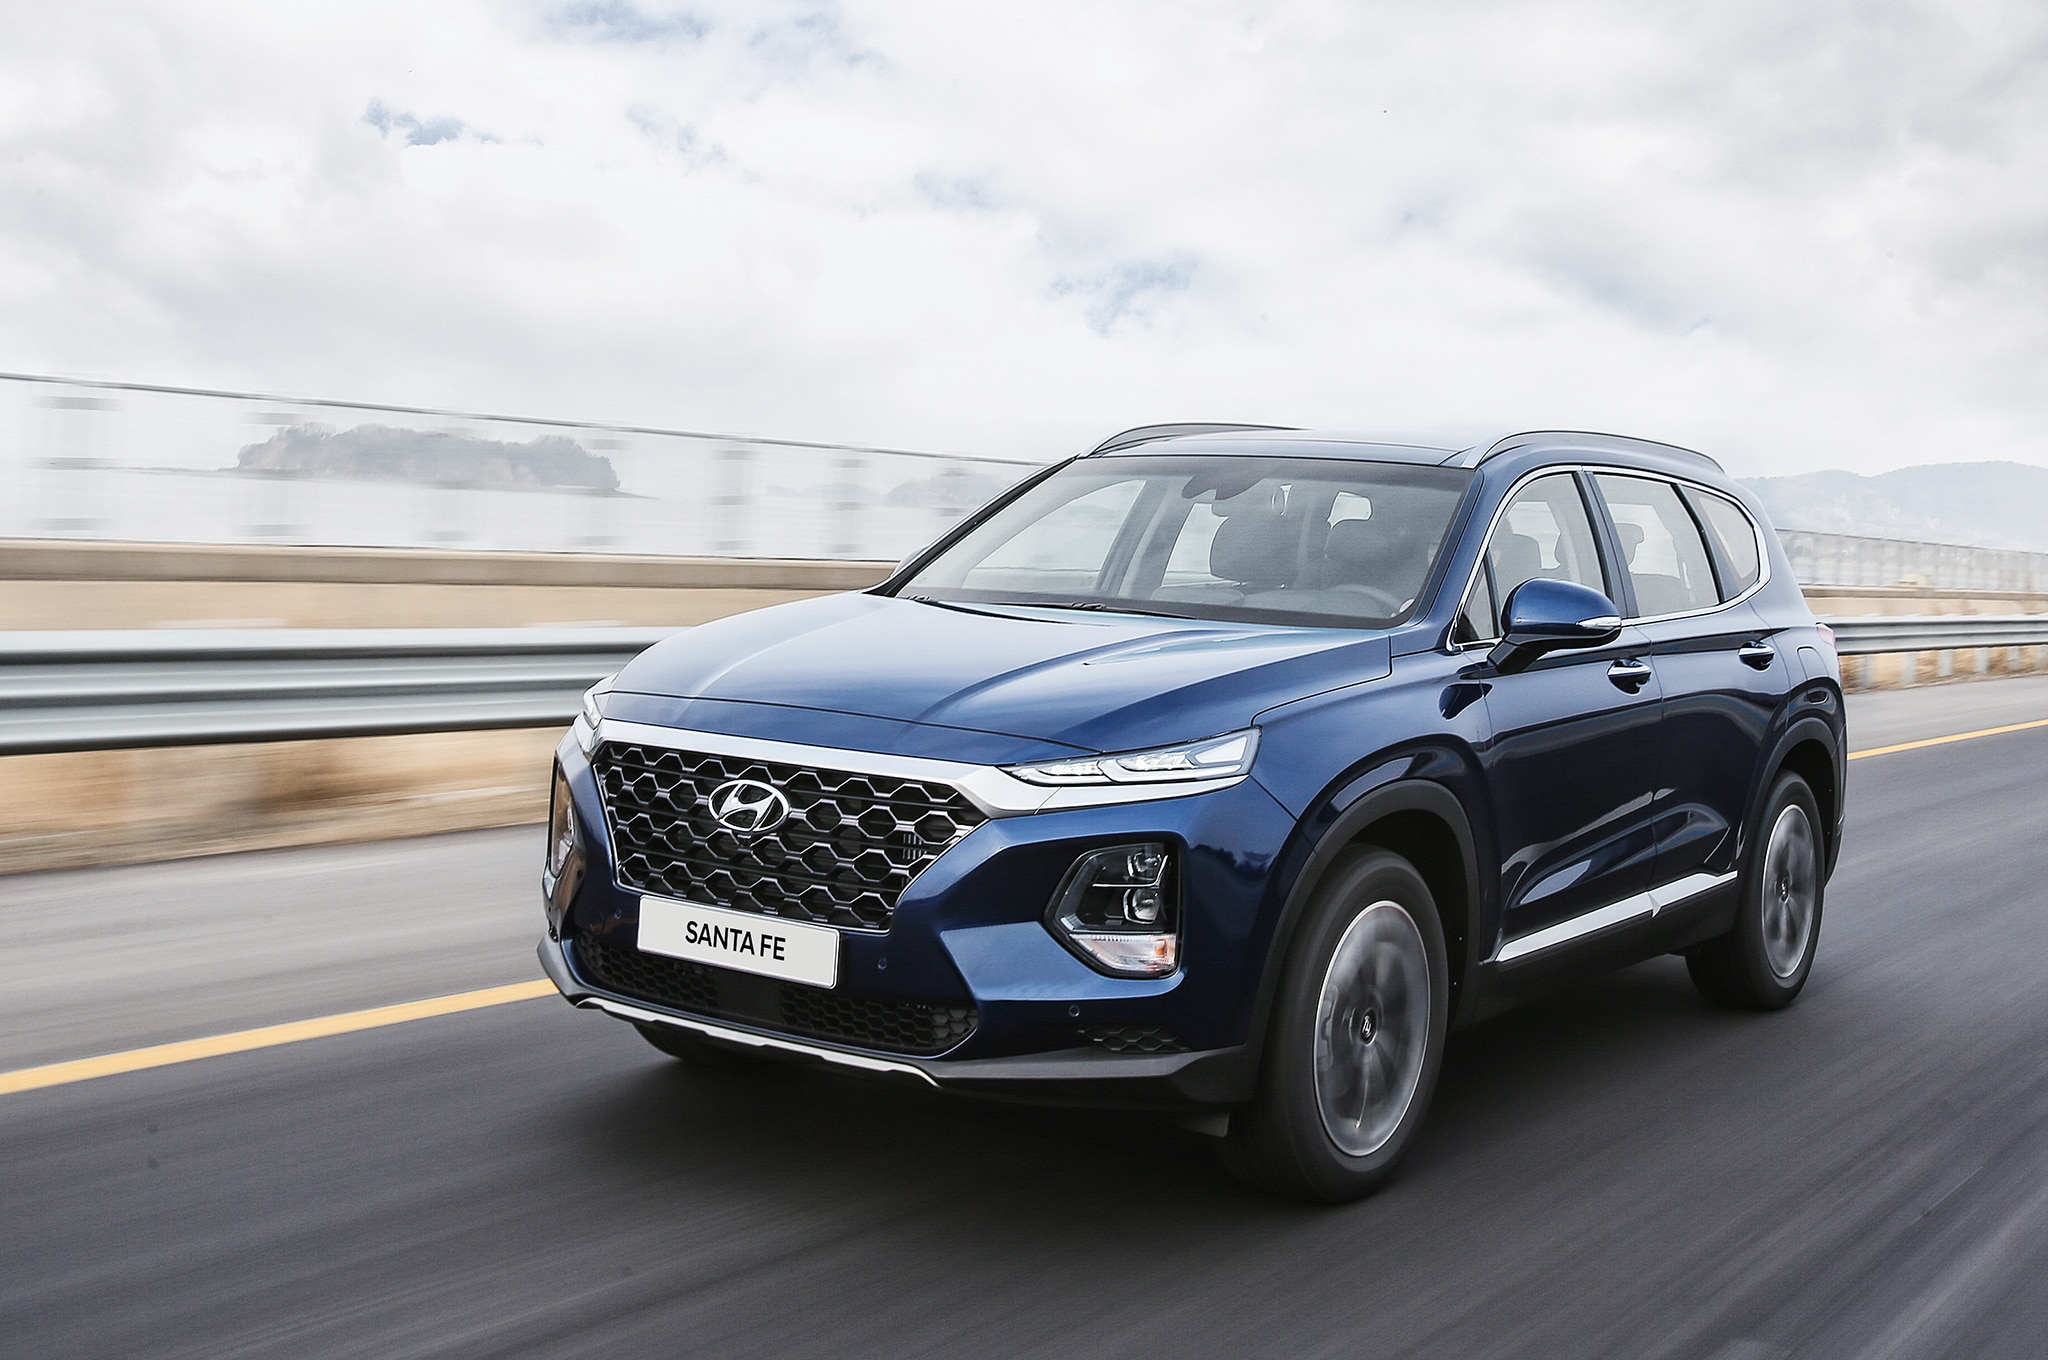 2019 hyundai santa fe first drive review automobile magazine. Black Bedroom Furniture Sets. Home Design Ideas